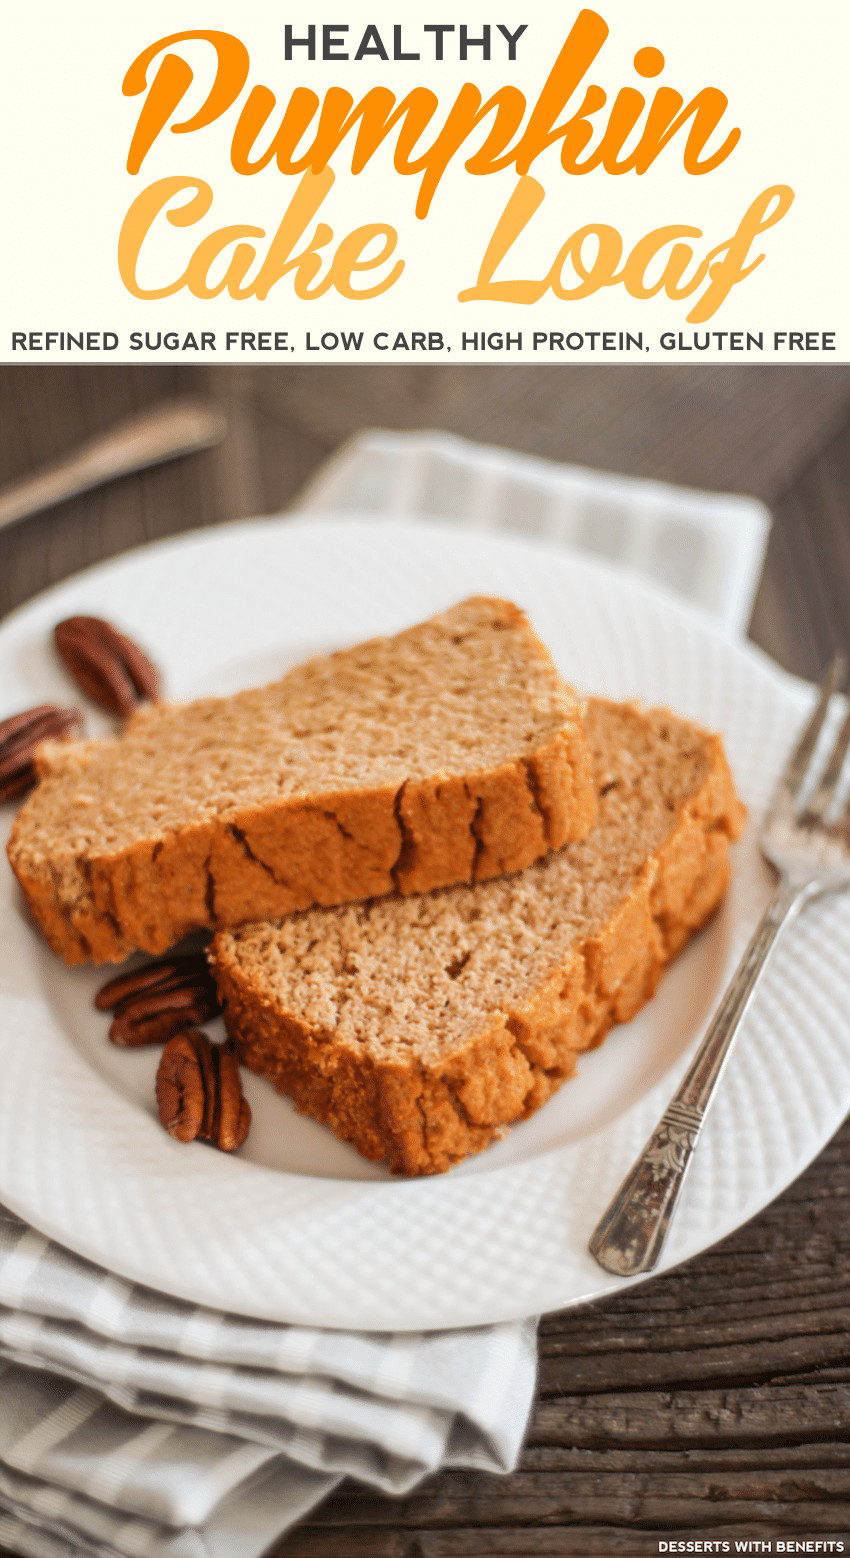 Low Carb Sugar Free Desserts  Desserts With Benefits Healthy Pumpkin Cake Loaf recipe